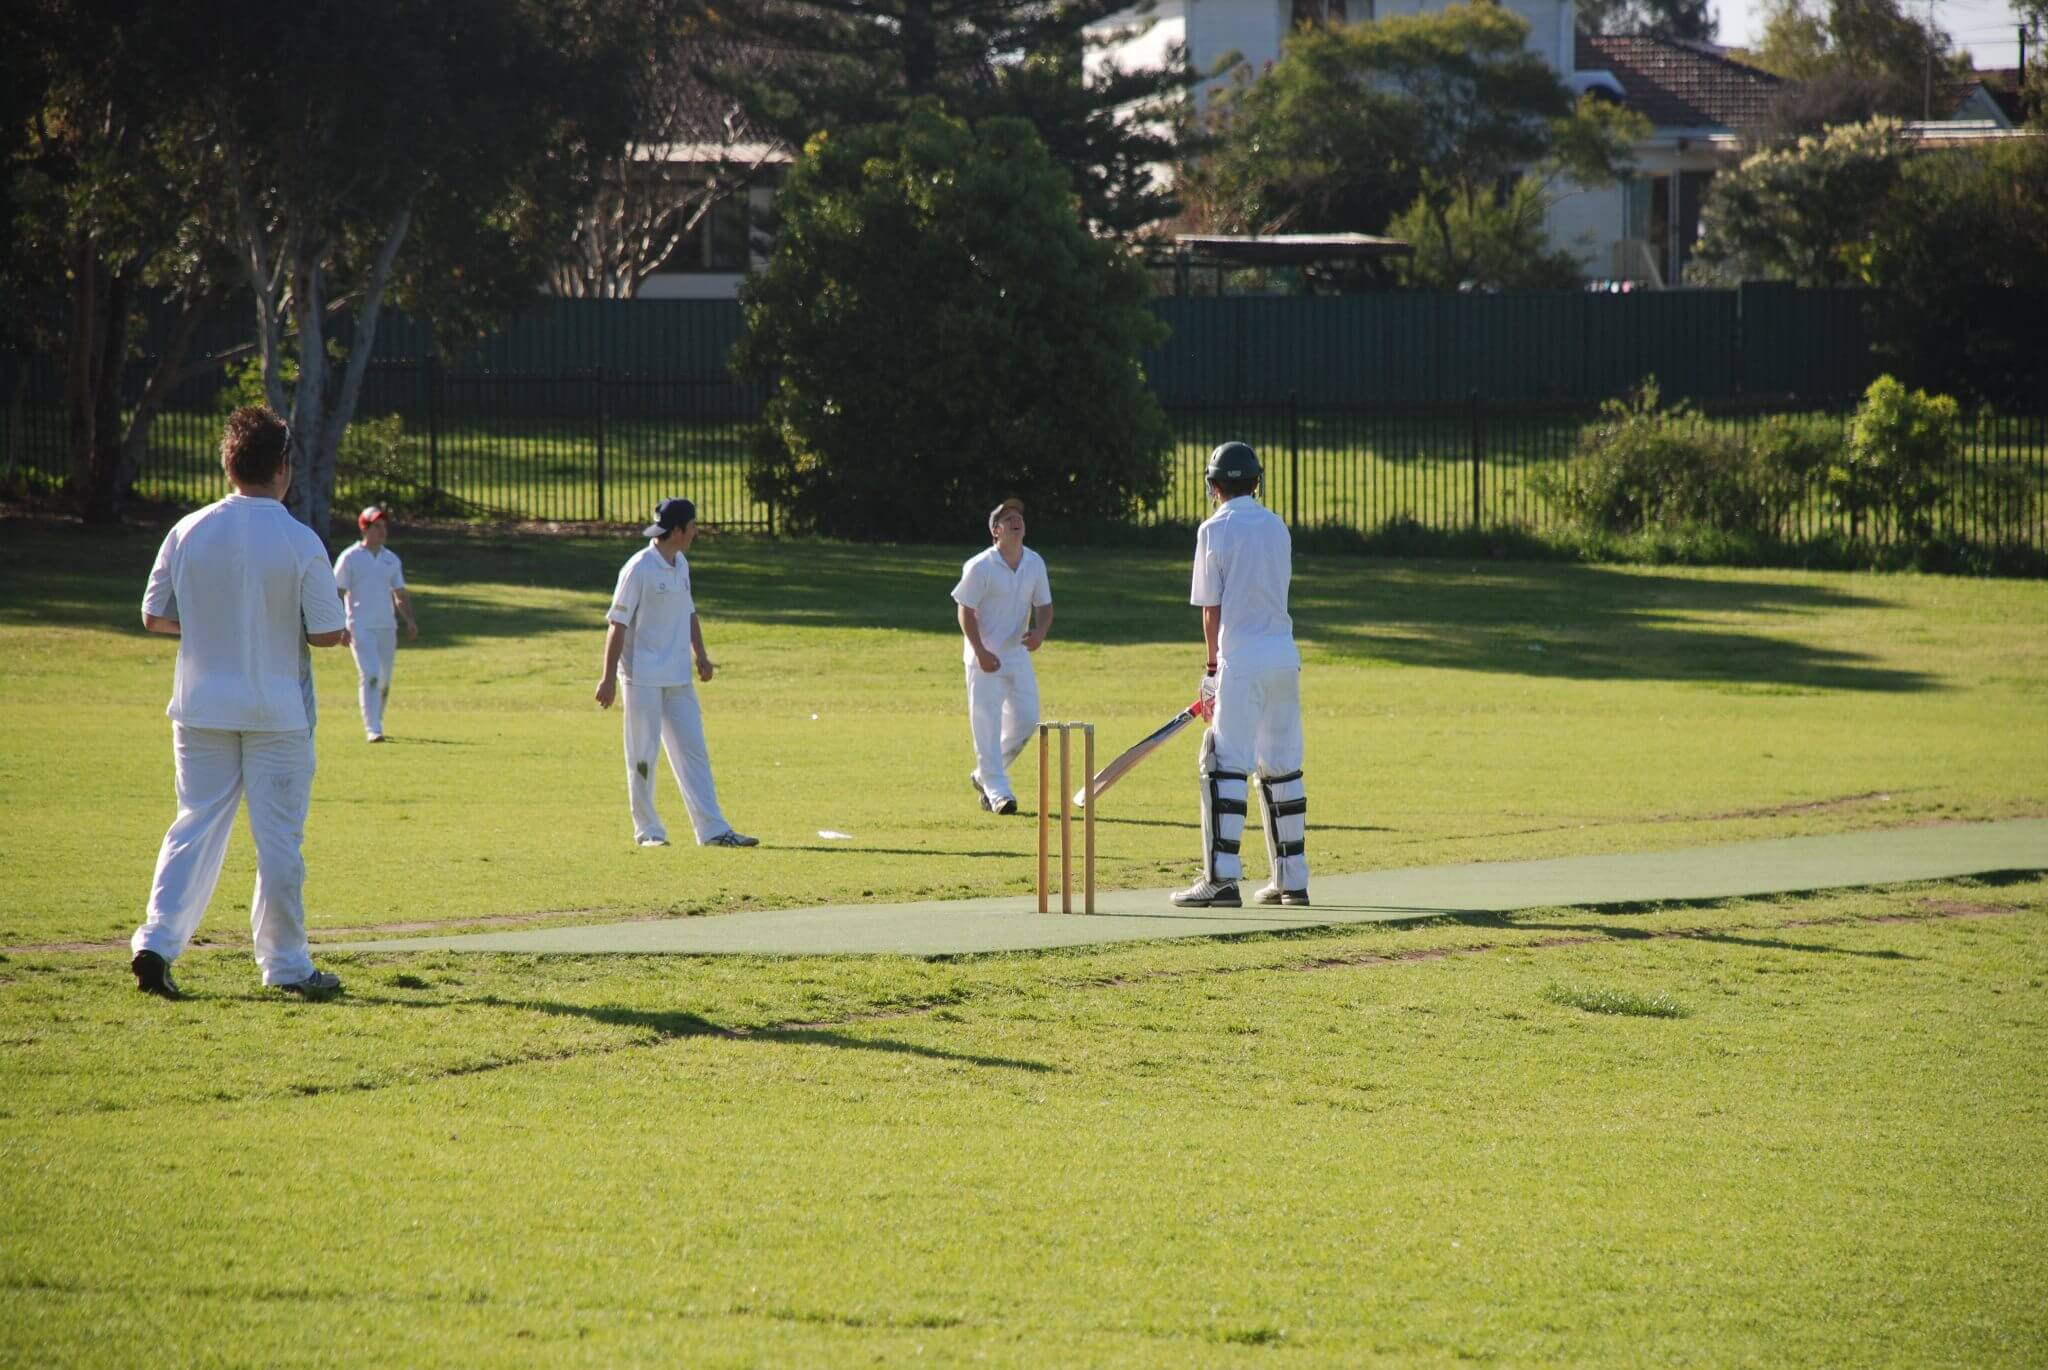 A Junior Cricket Game in Action.